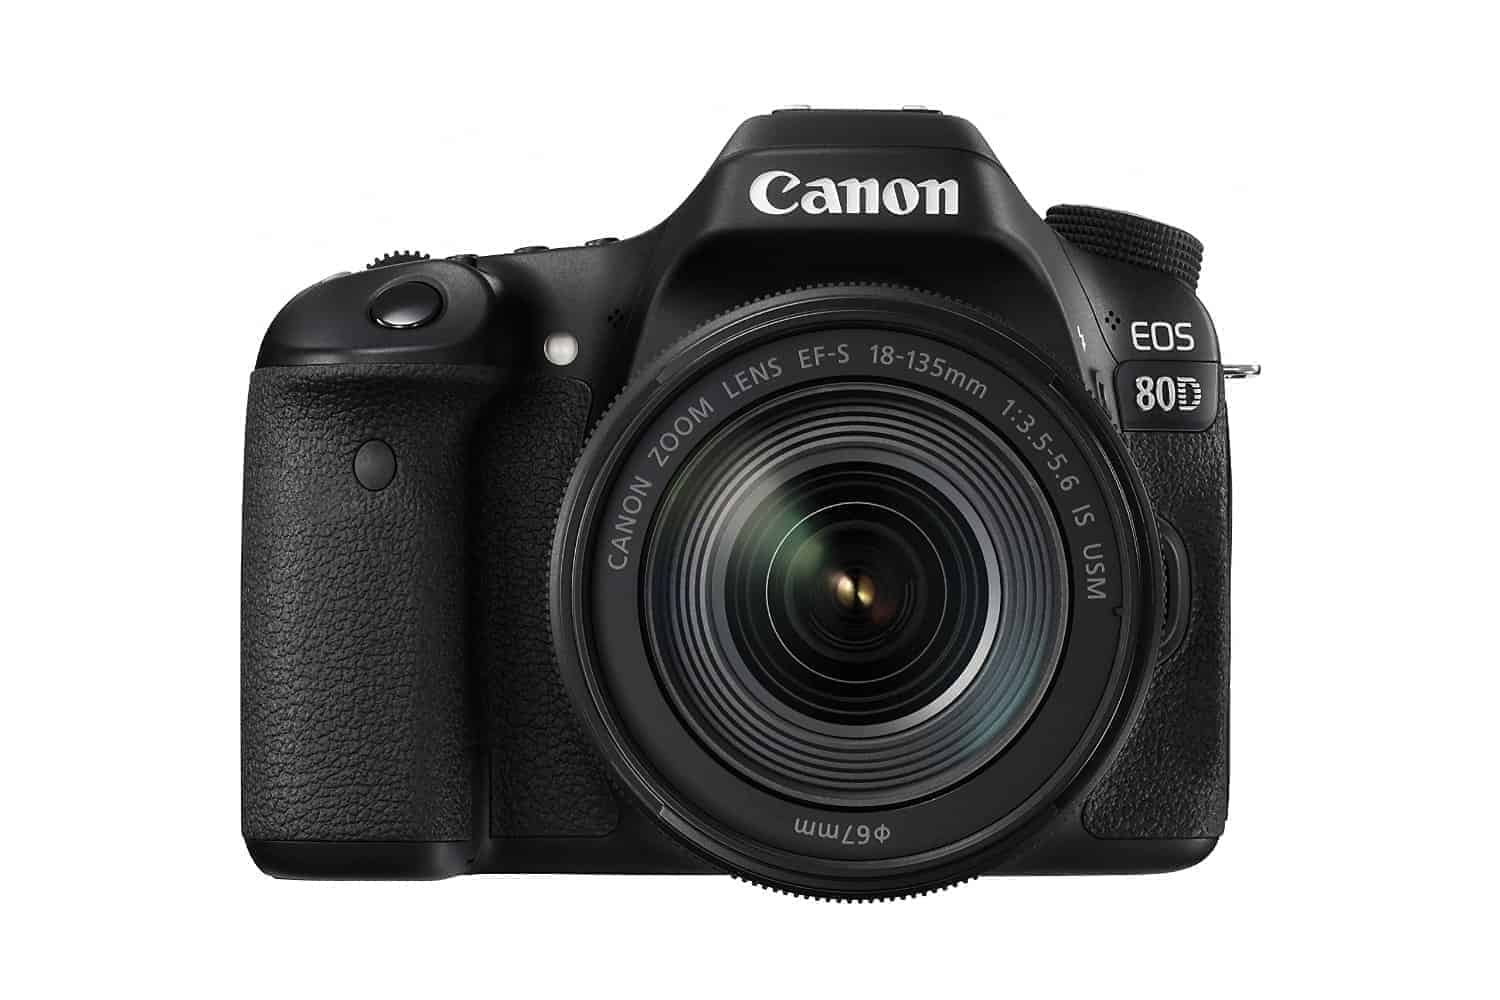 Camera Discount Dslr Camera canon eos 80d deal big price discounts for highly rated dslr kit lens